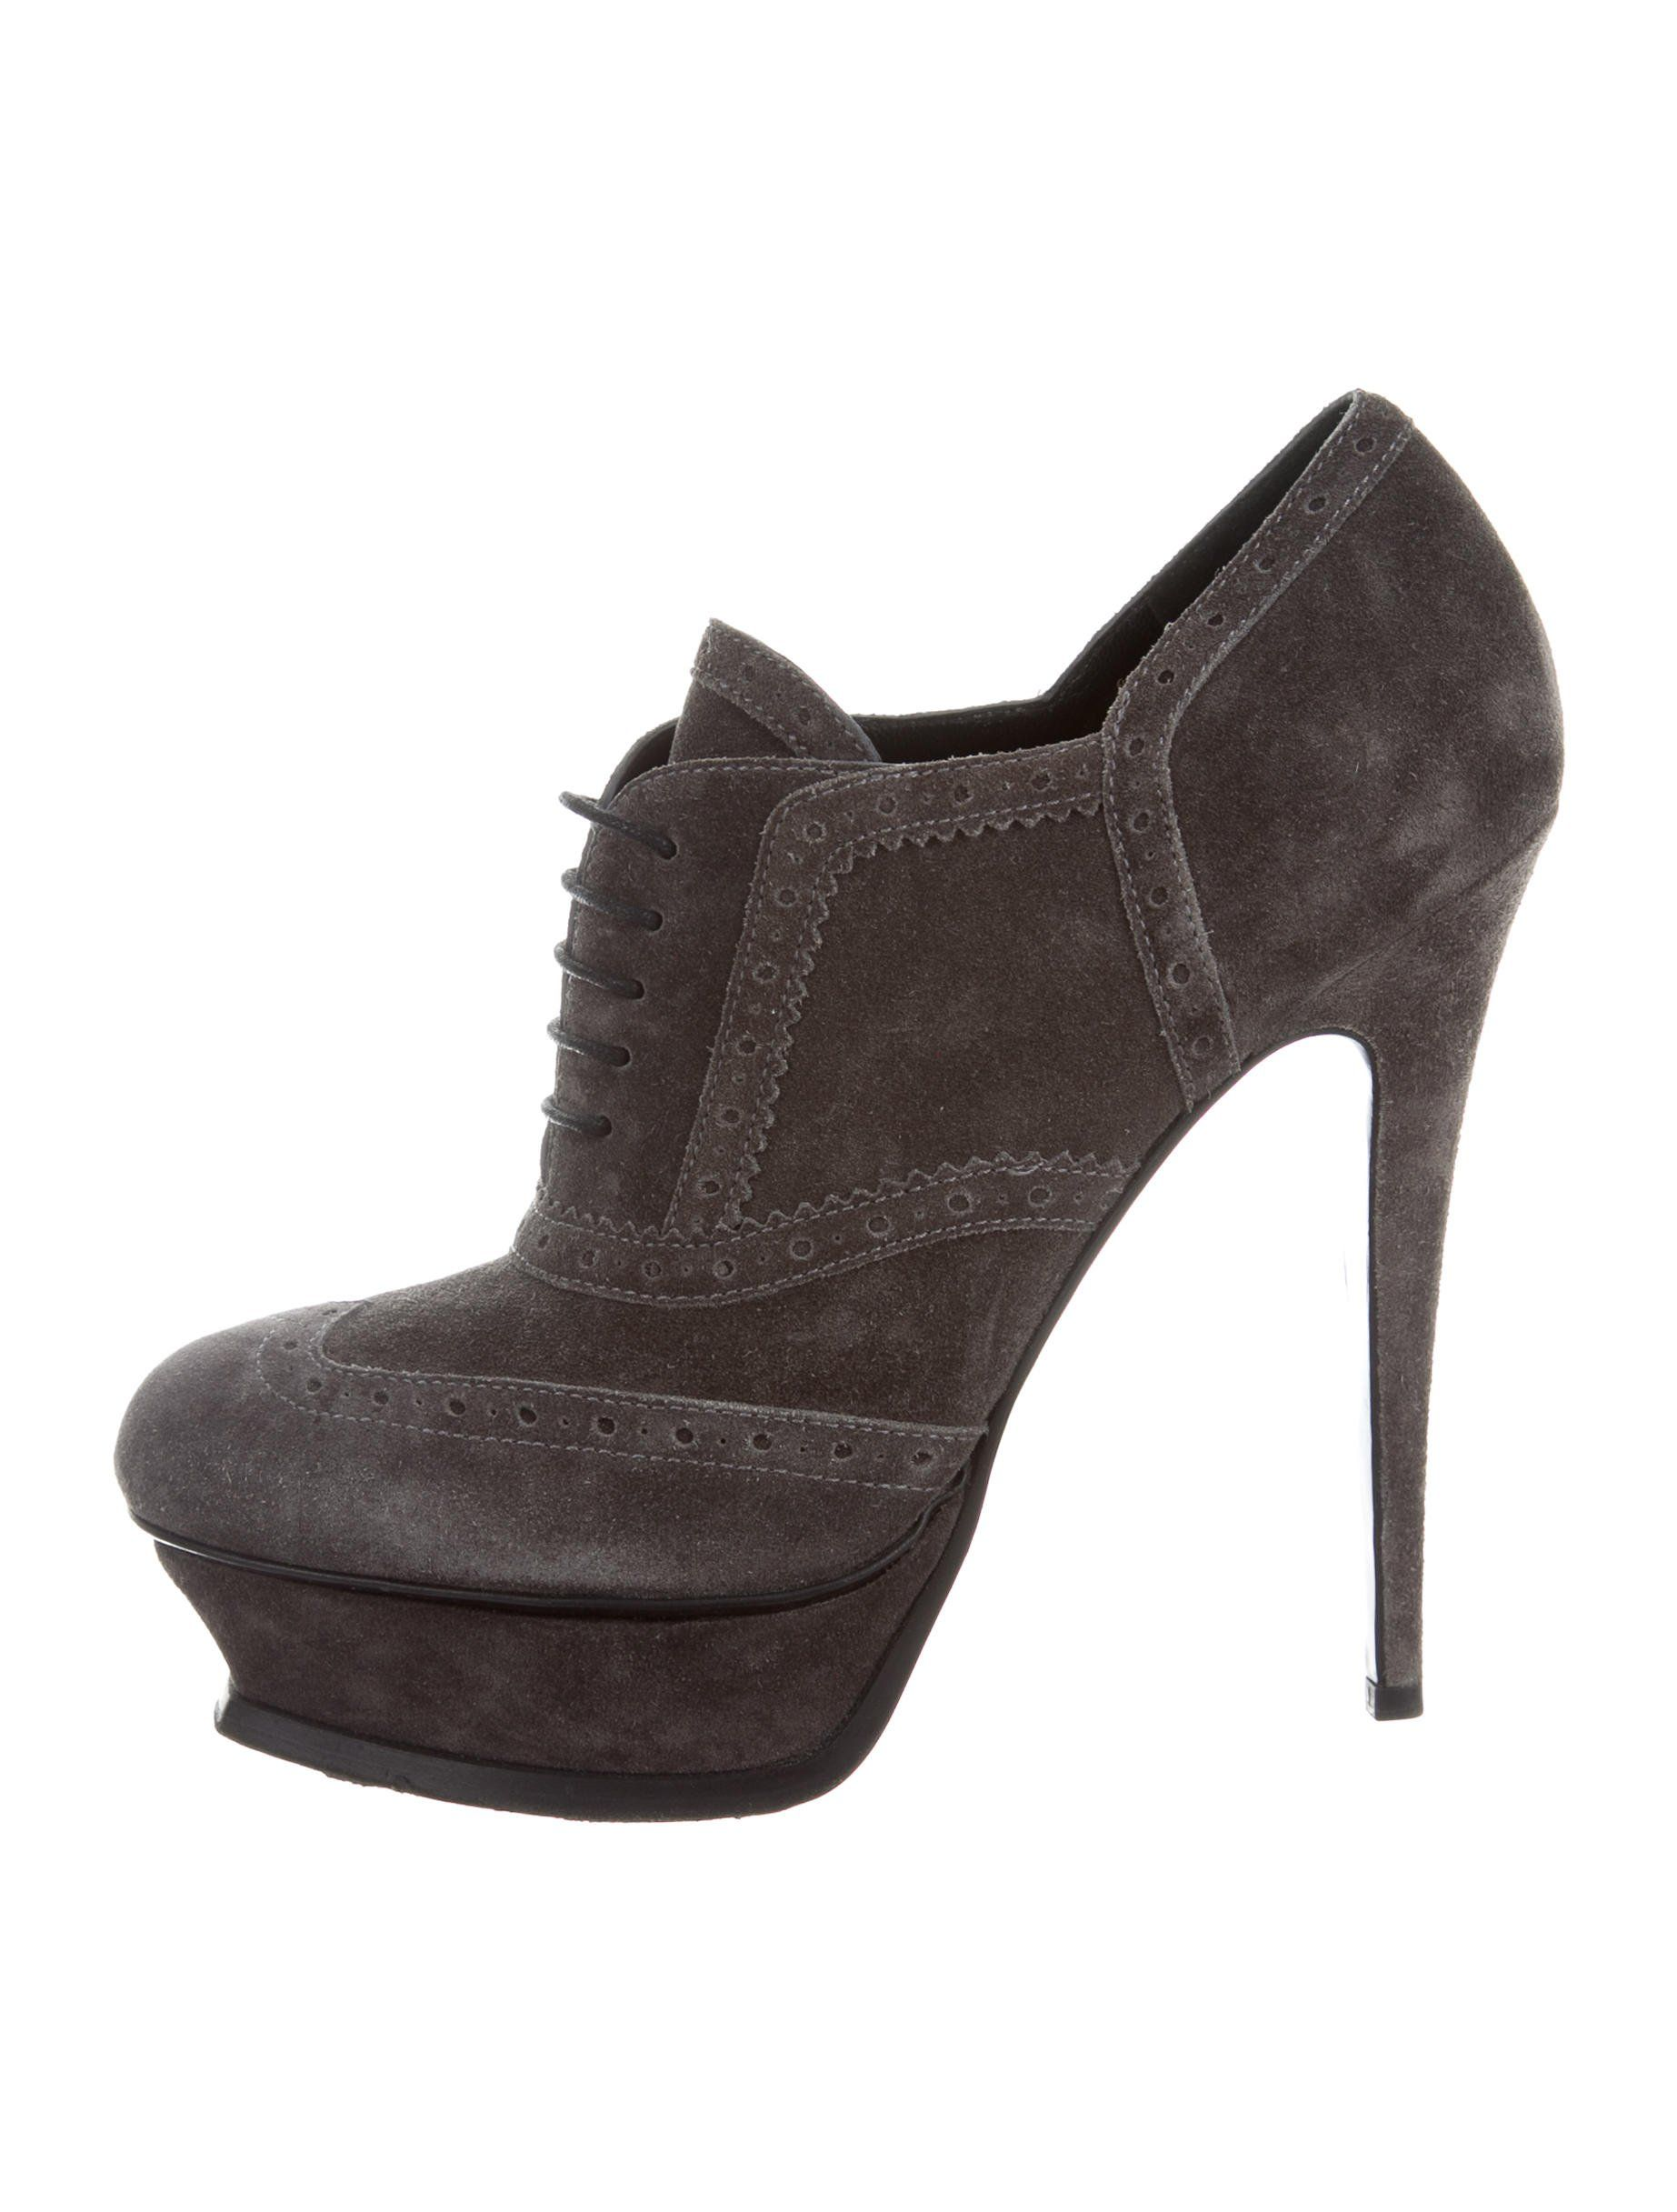 9c6a5e8f80e Charcoal suede Yves Saint Laurent oxford ankle boots with tonal stitching,  covered platforms and heels